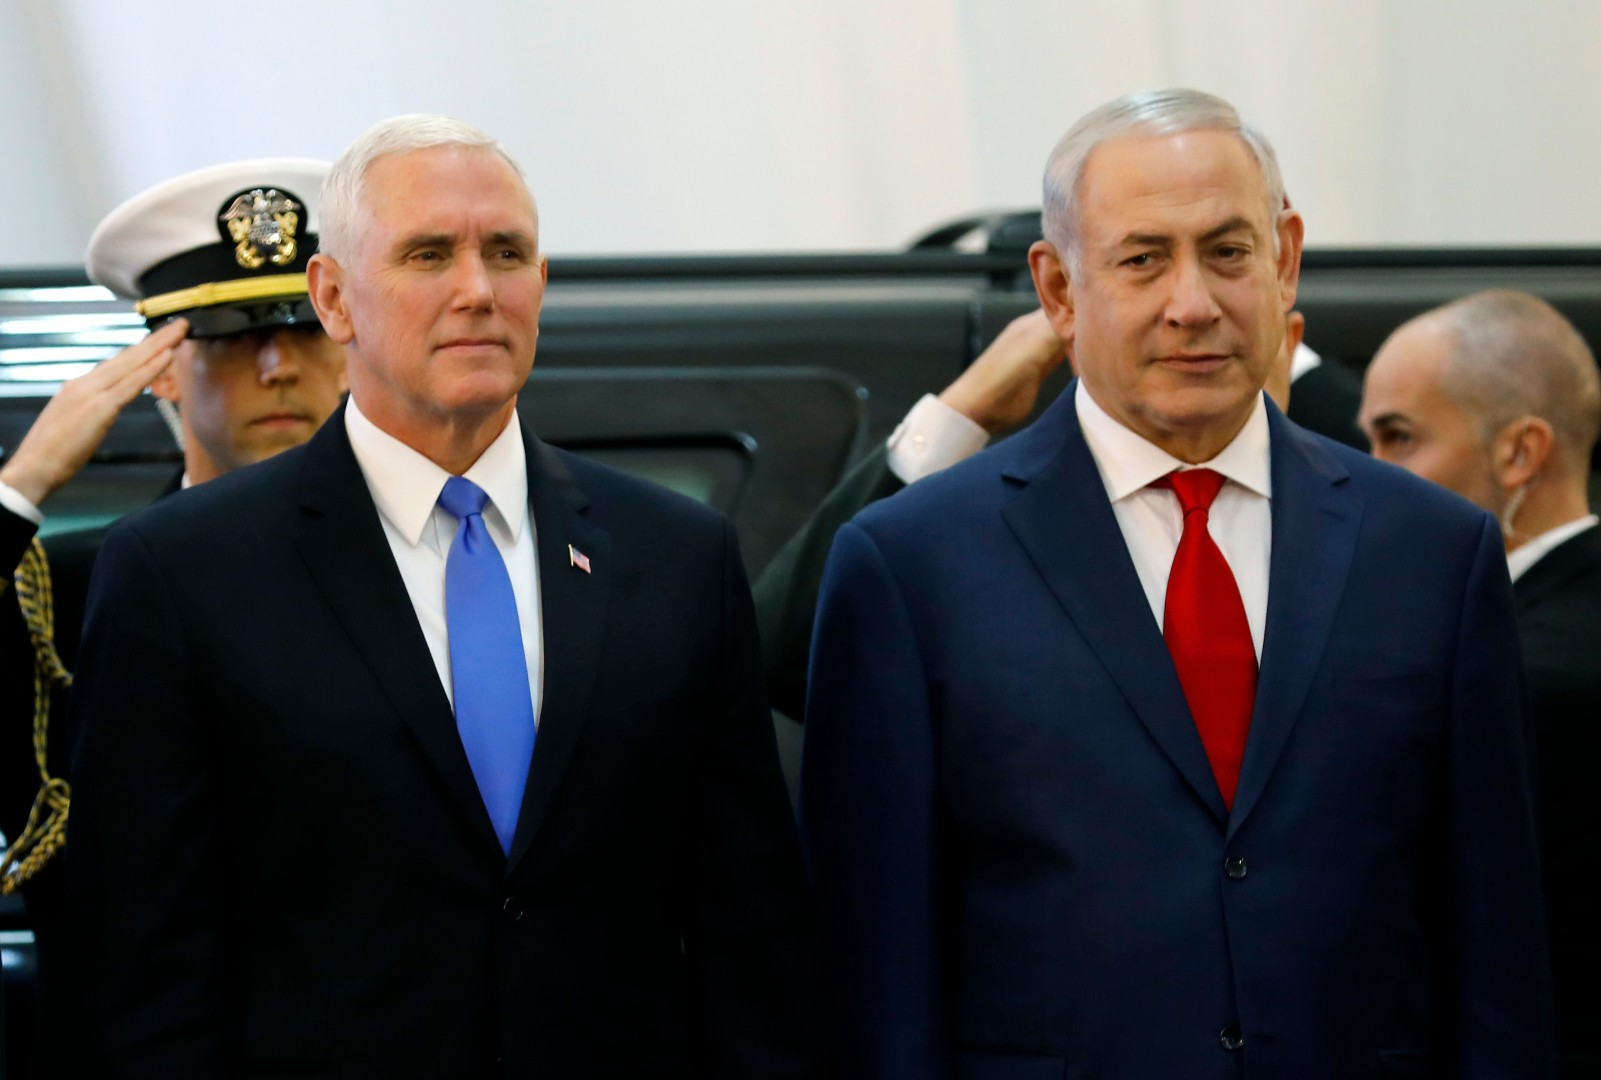 US Vice President Mike Pence (L) is welcomed by Israeli Prime Minister Benjamin Netanyahu at a ceremony at the Prime Minister's Office in Jerusalem on January 22, 2018. The visit, initially scheduled for December before being postponed, is the final leg of a trip that has included talks in Egypt and Jordan as well as a stop at a US military facility near the Syrian border. Controversy back home over a budget dispute that has led to a US government shutdown has trailed Pence, and he sought to blame Democrats for the impasse during a speech to troops at the military facility a day earlier. / AFP PHOTO / Menahem KAHANA